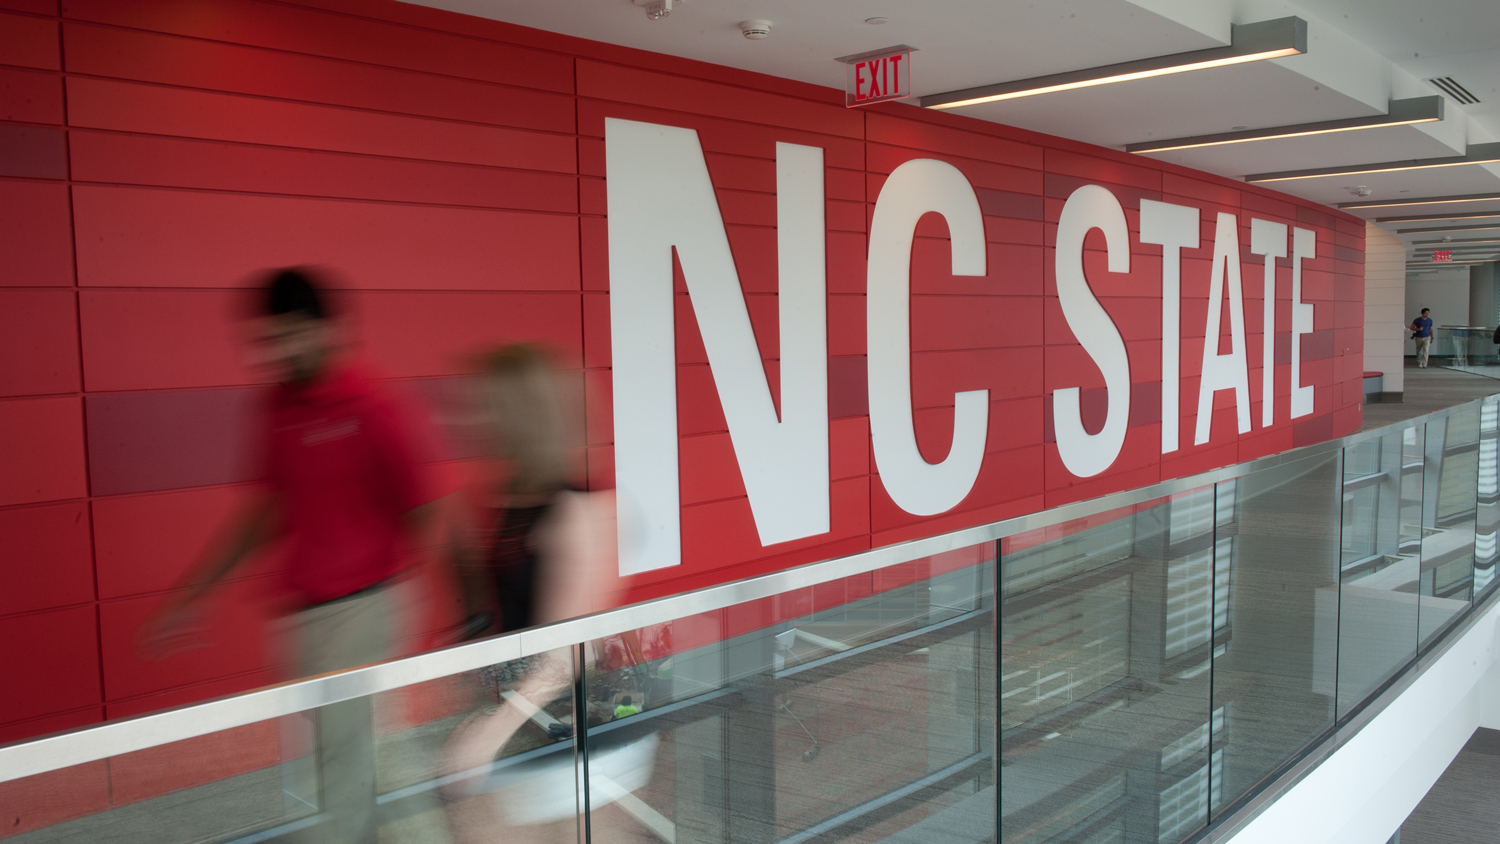 NC State Tally Union - Academics - College of Natural Resources at NC State University